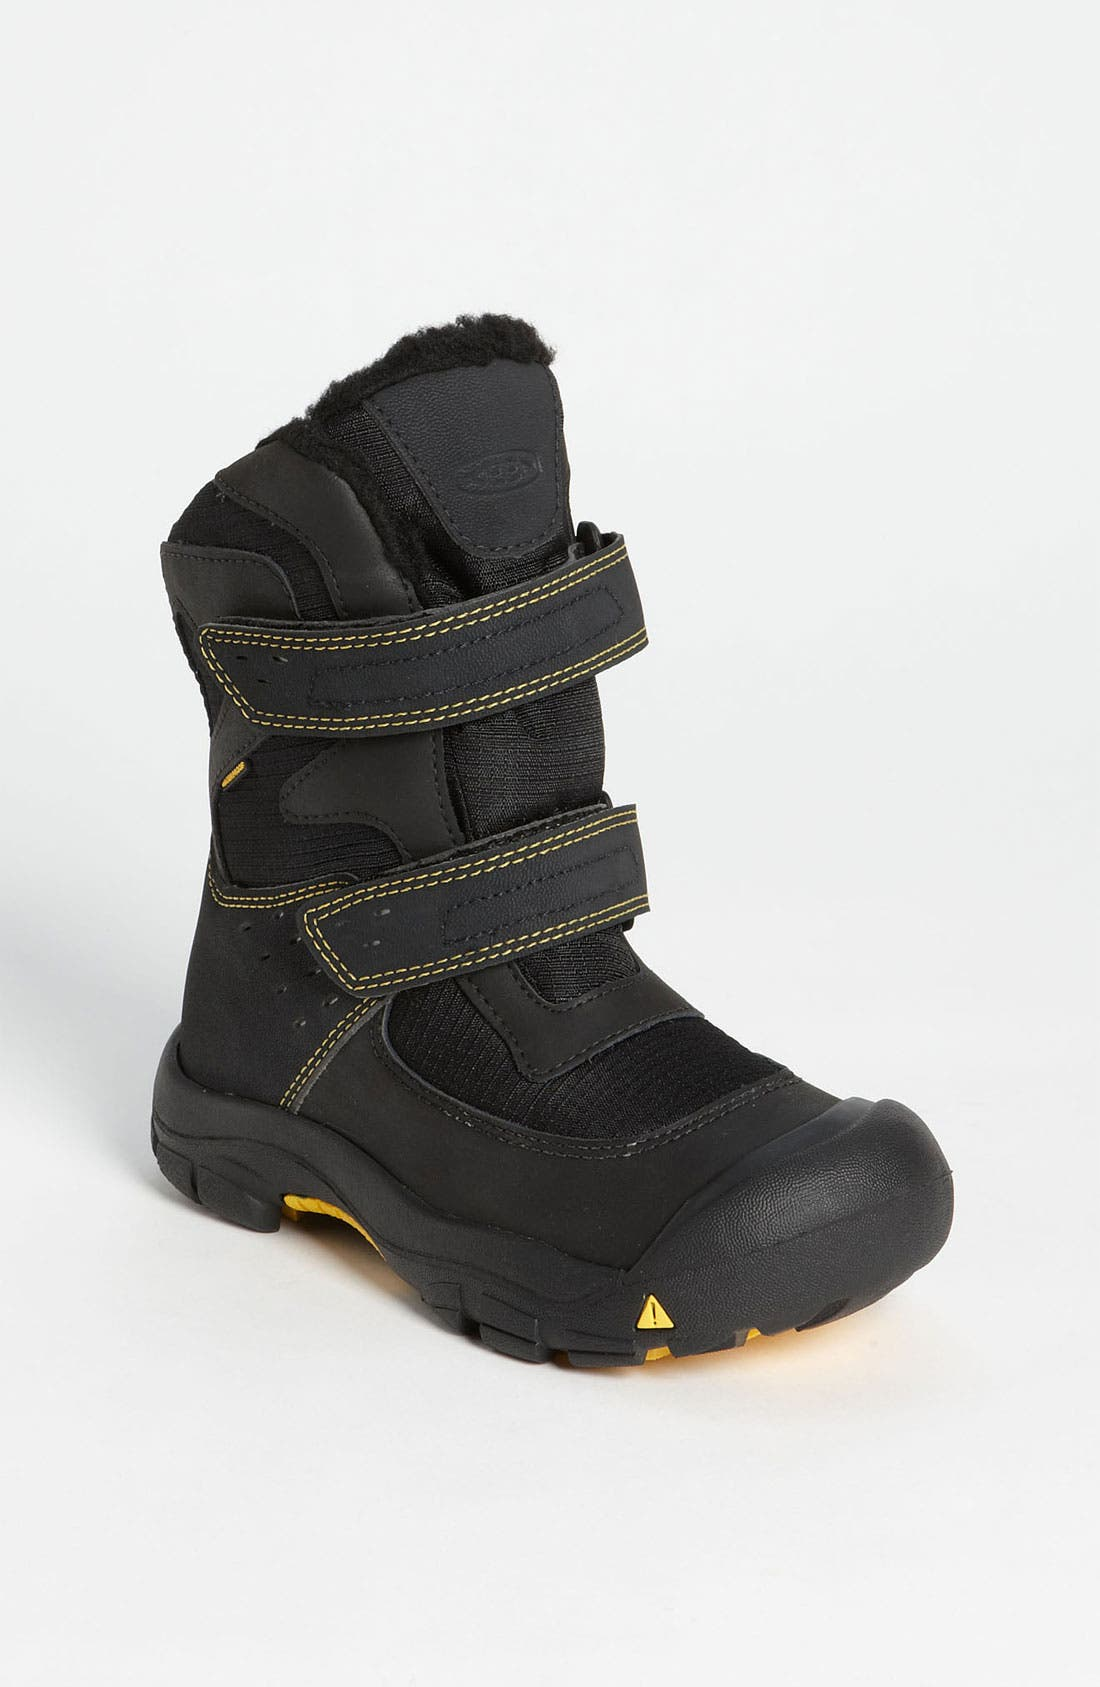 Main Image - Keen 'Kalamazoo' Snow Boot (Toddler, Little Kid & Big Kid)